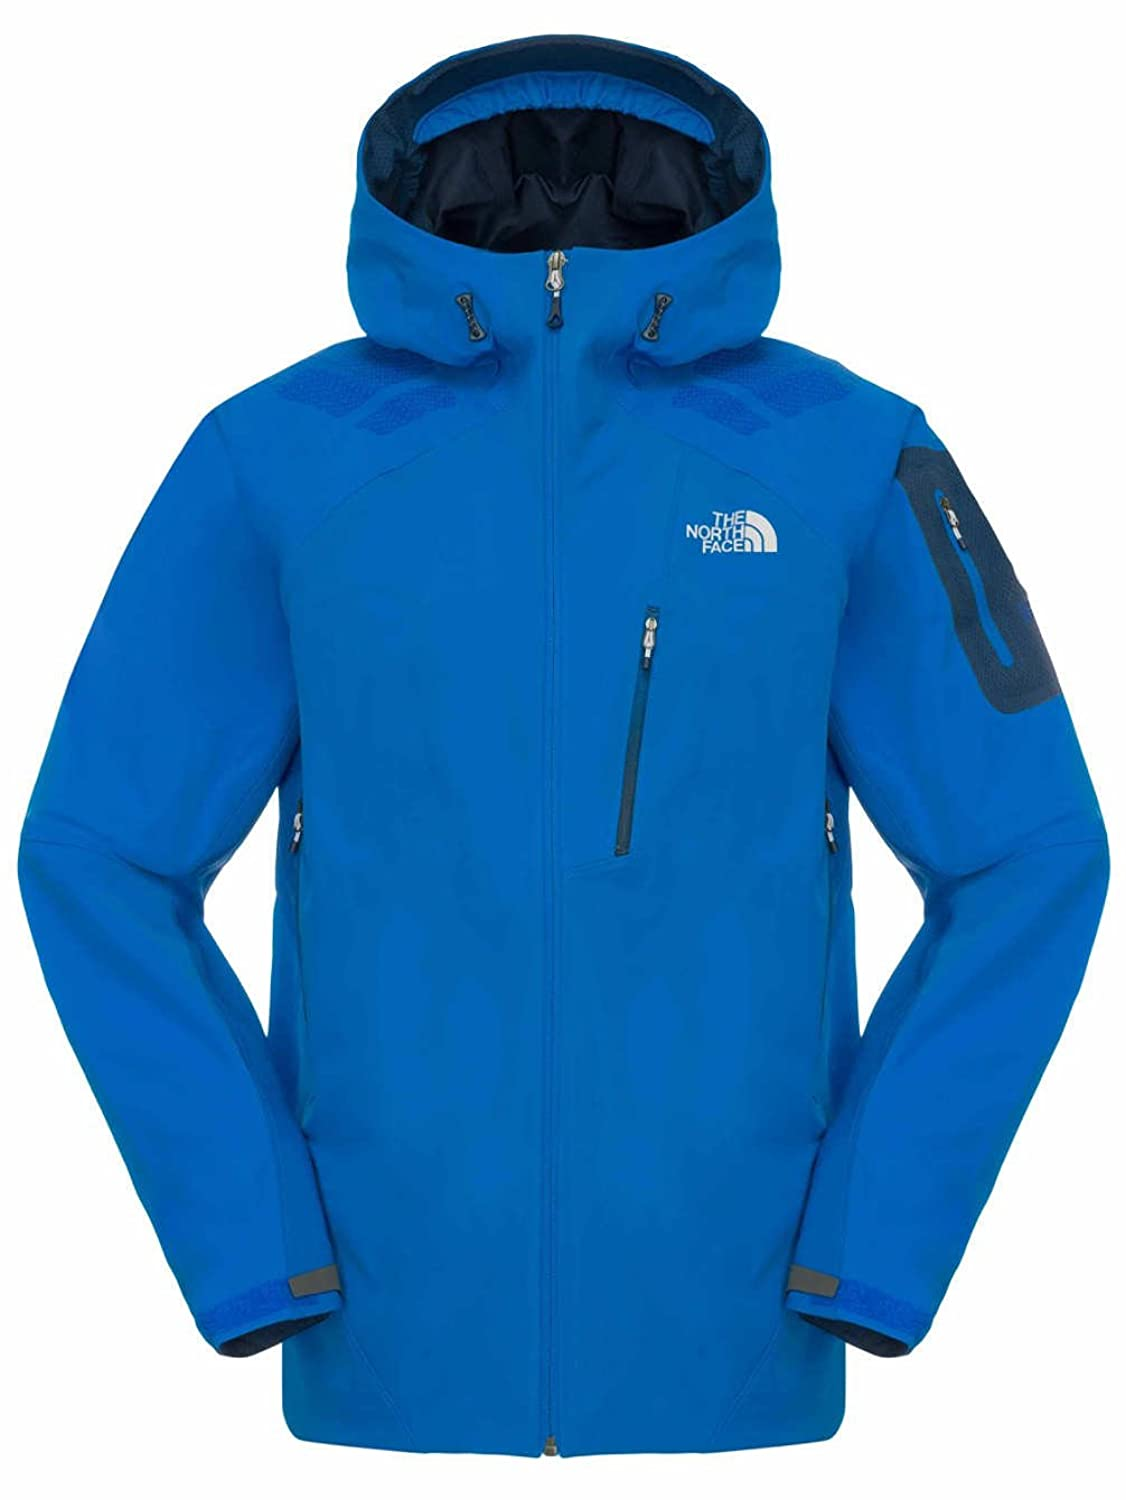 Herren Snowboard Jacke The North Face Alloy Jacket kaufen